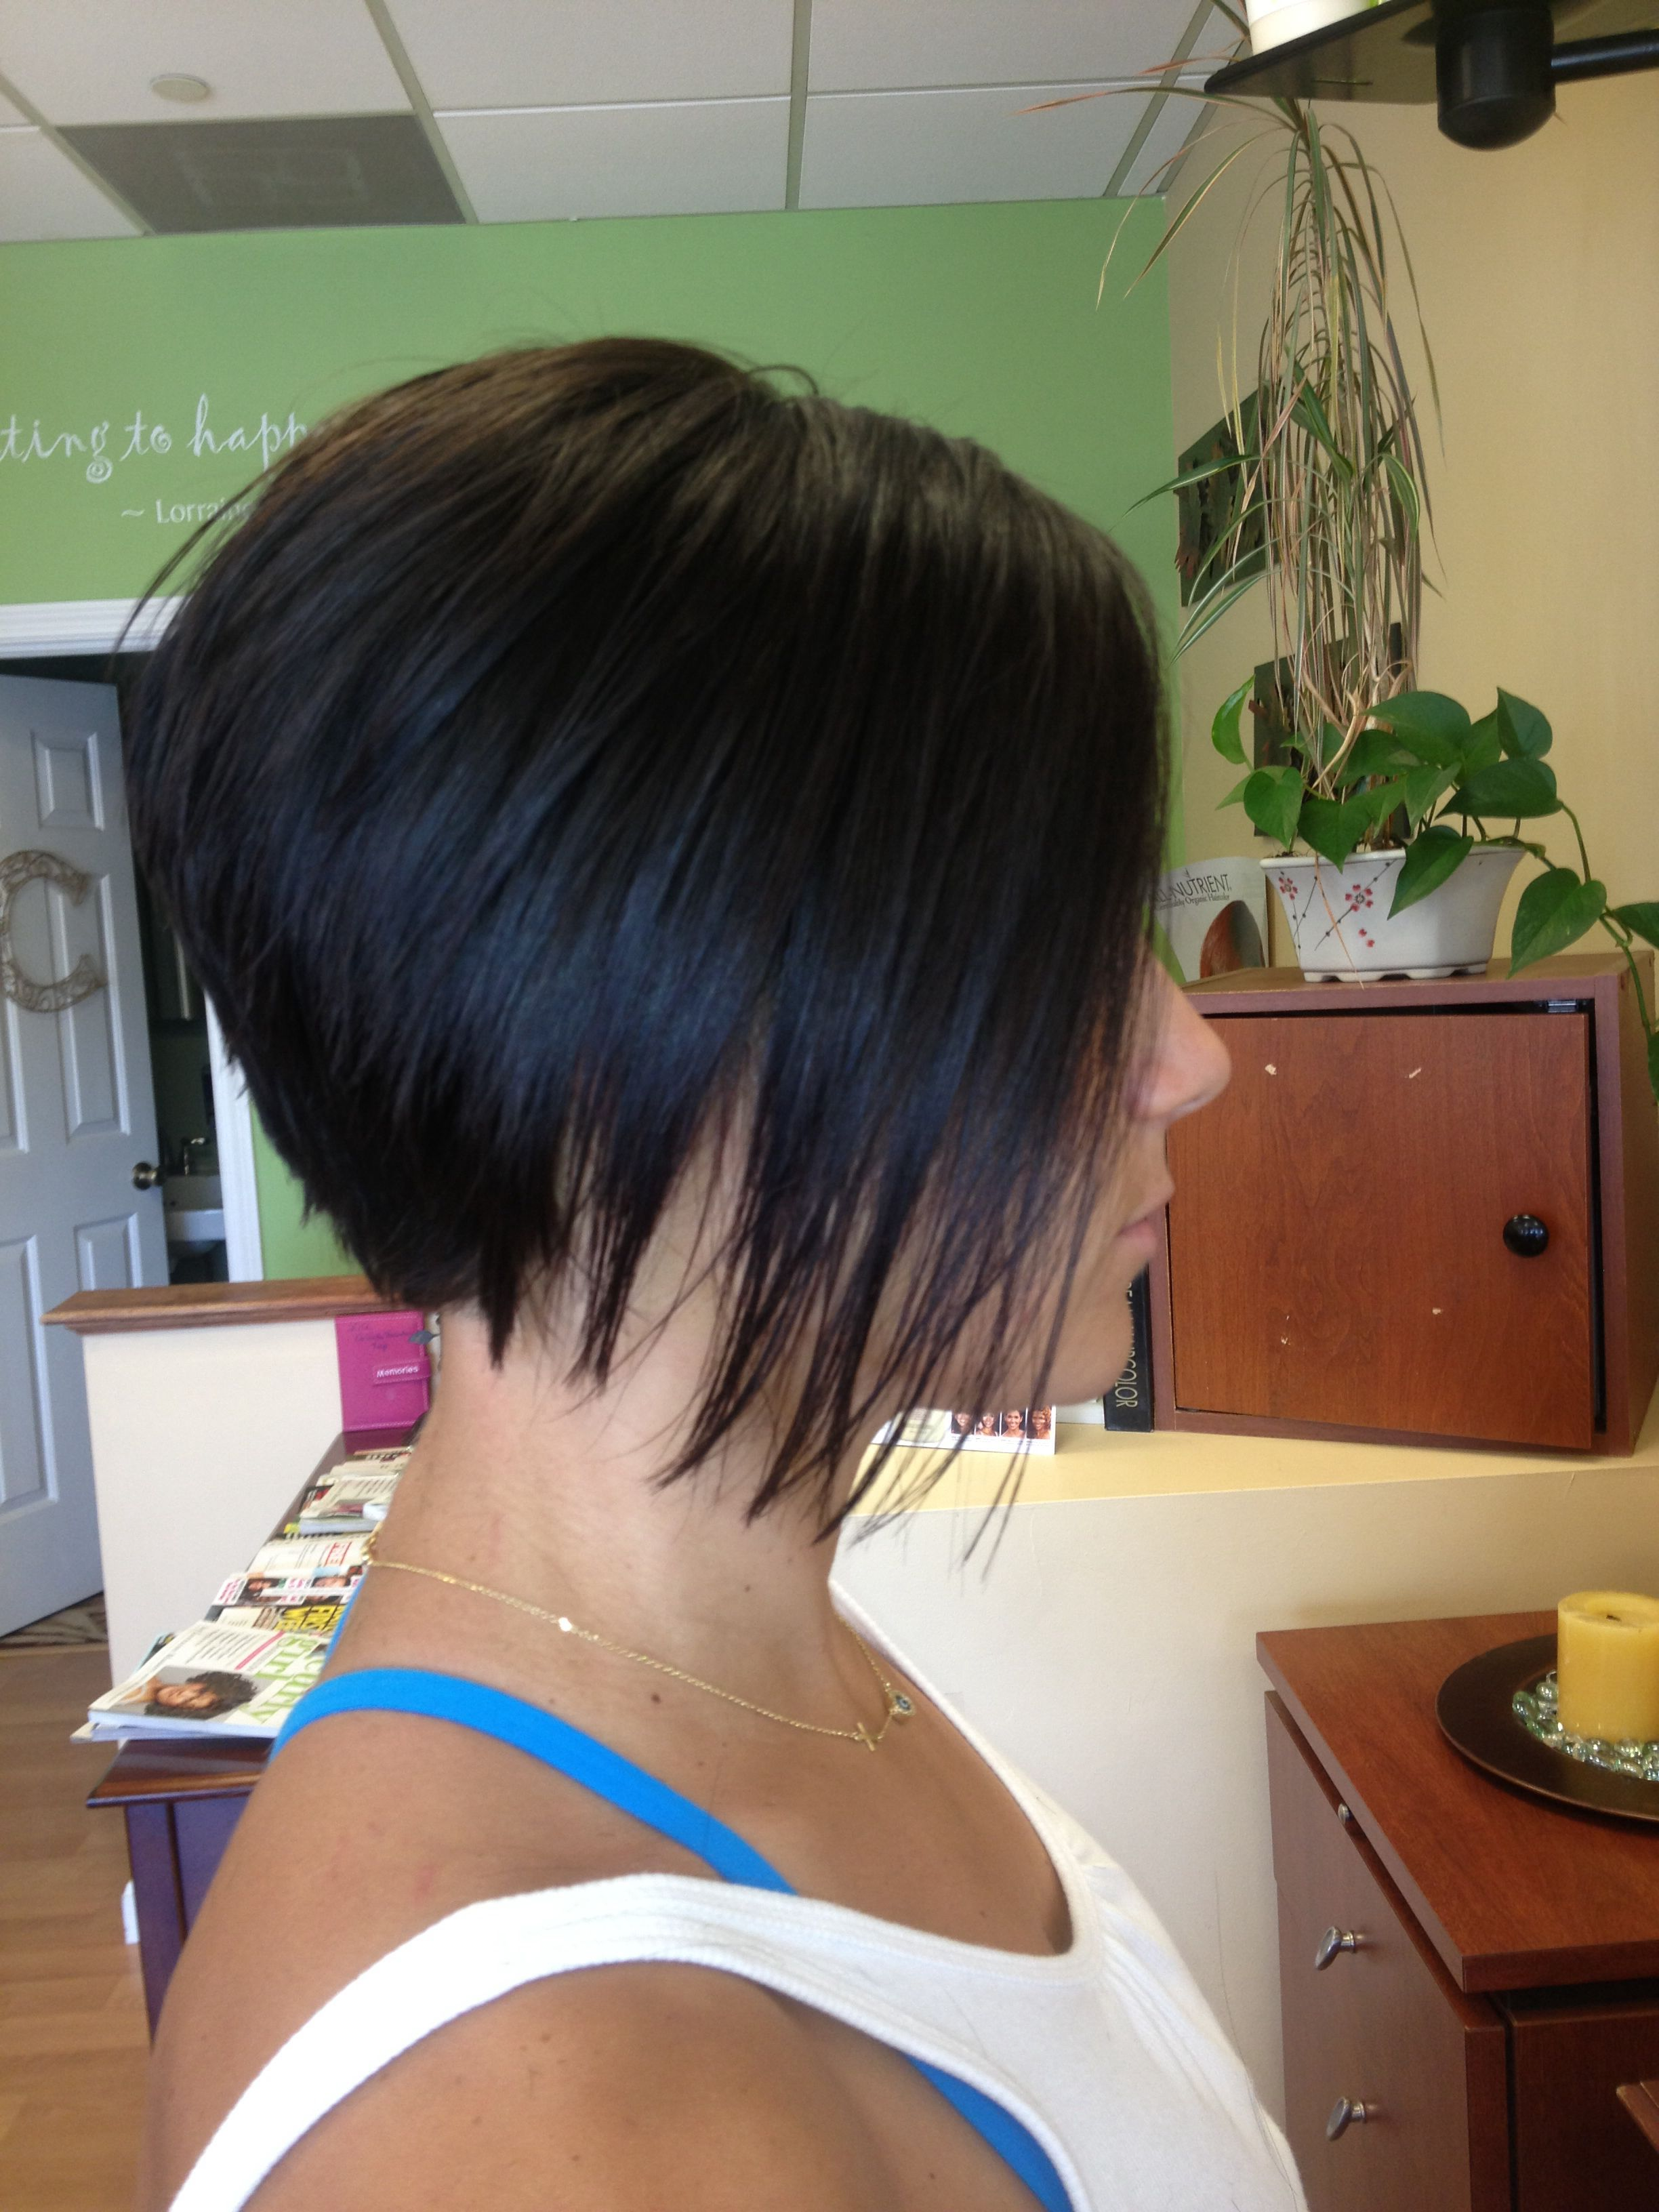 A Line Bobying To Get The Stylists To Do This To My Hair While